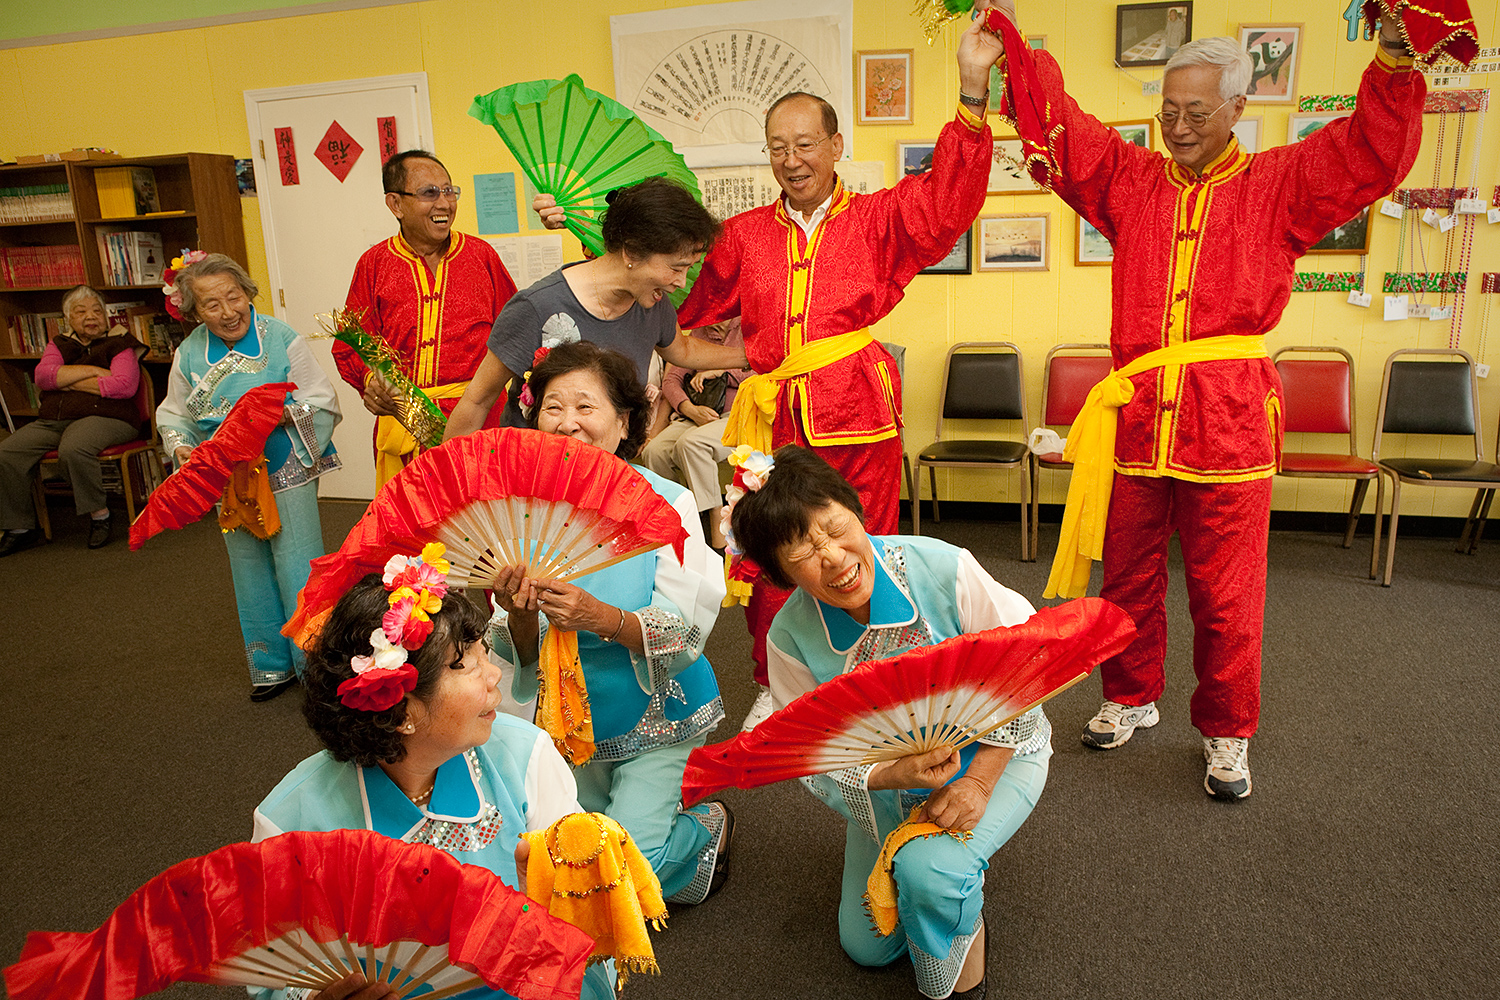 A group at the St. Louis Christian Chinese Community Service Center practices a performance for their annual fundraiser night.